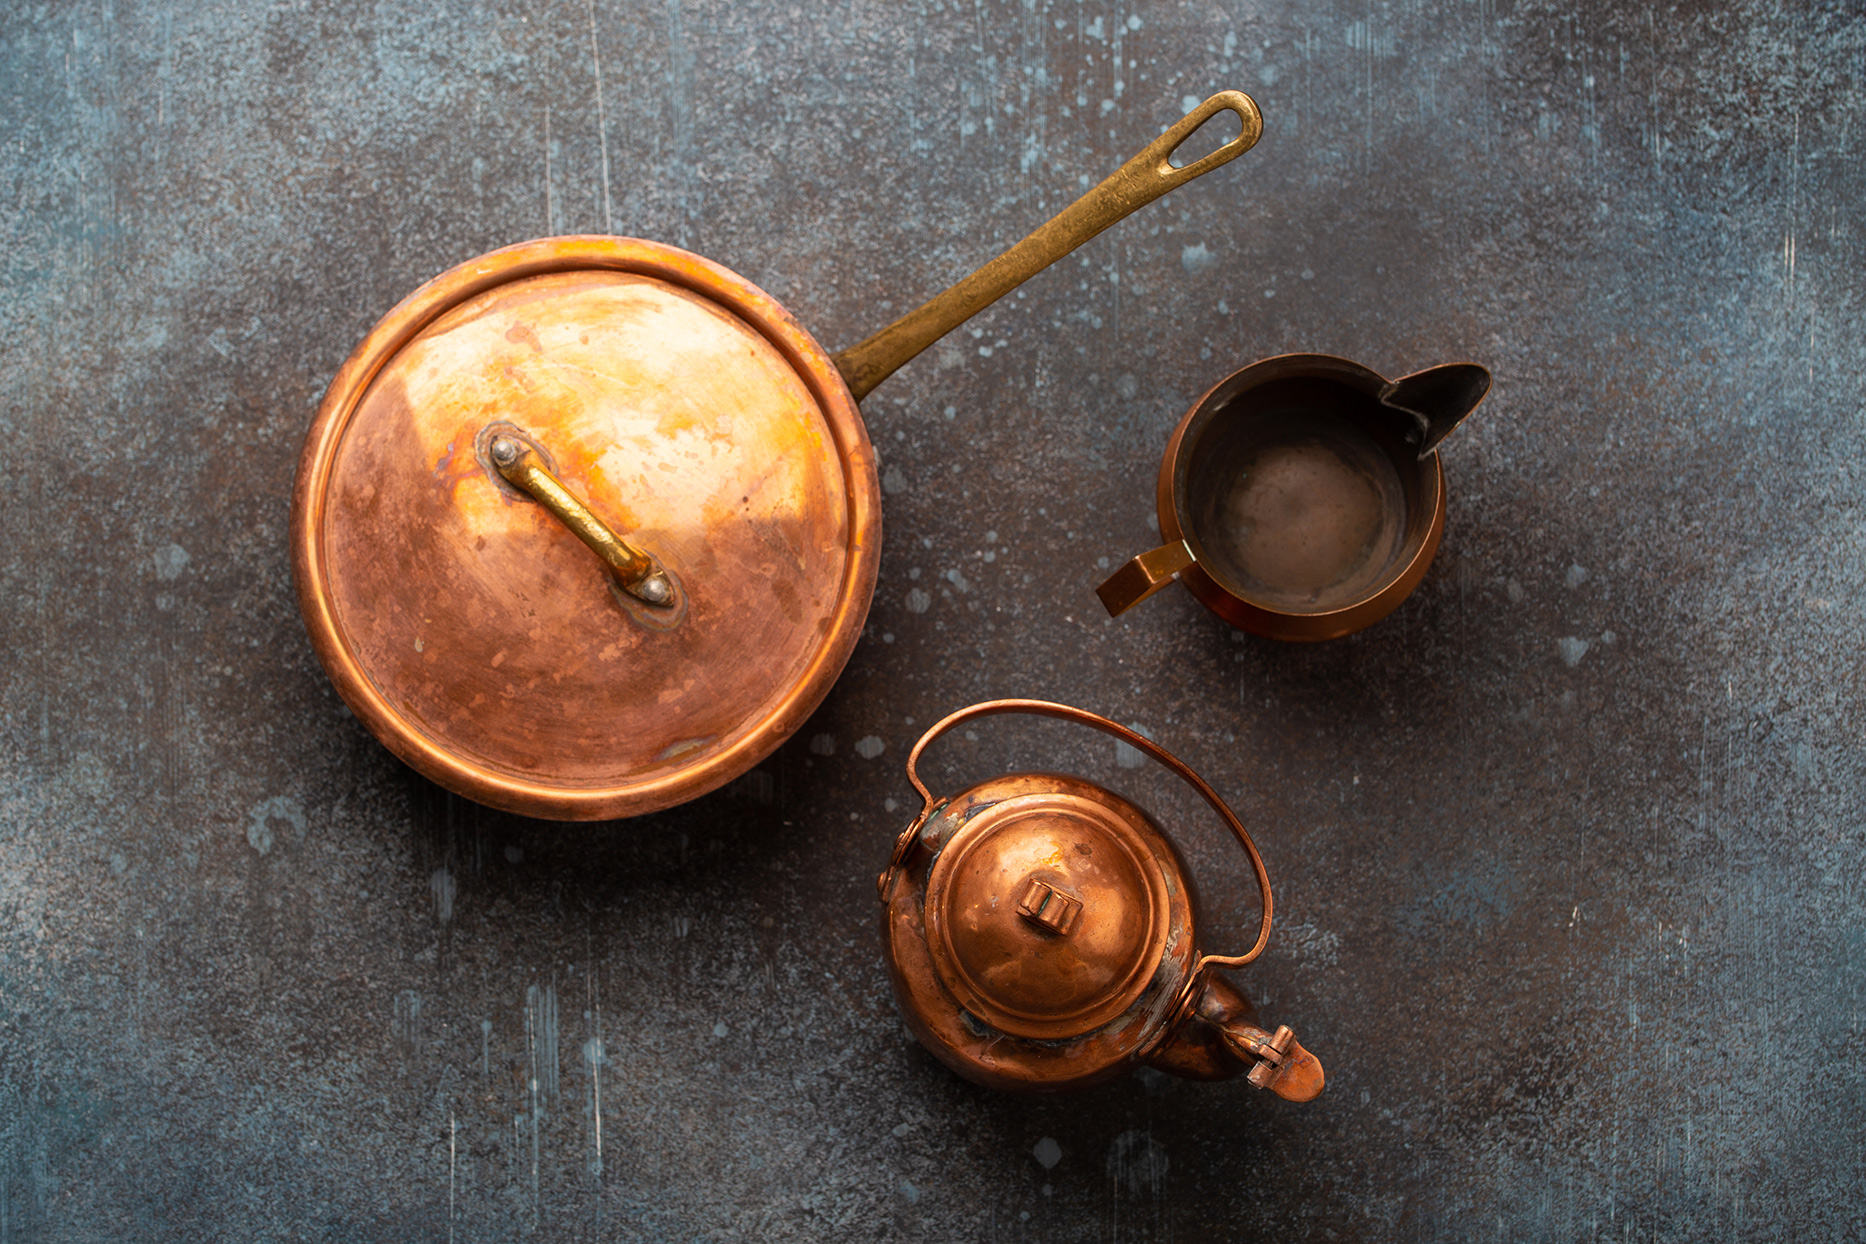 copper cookware on table